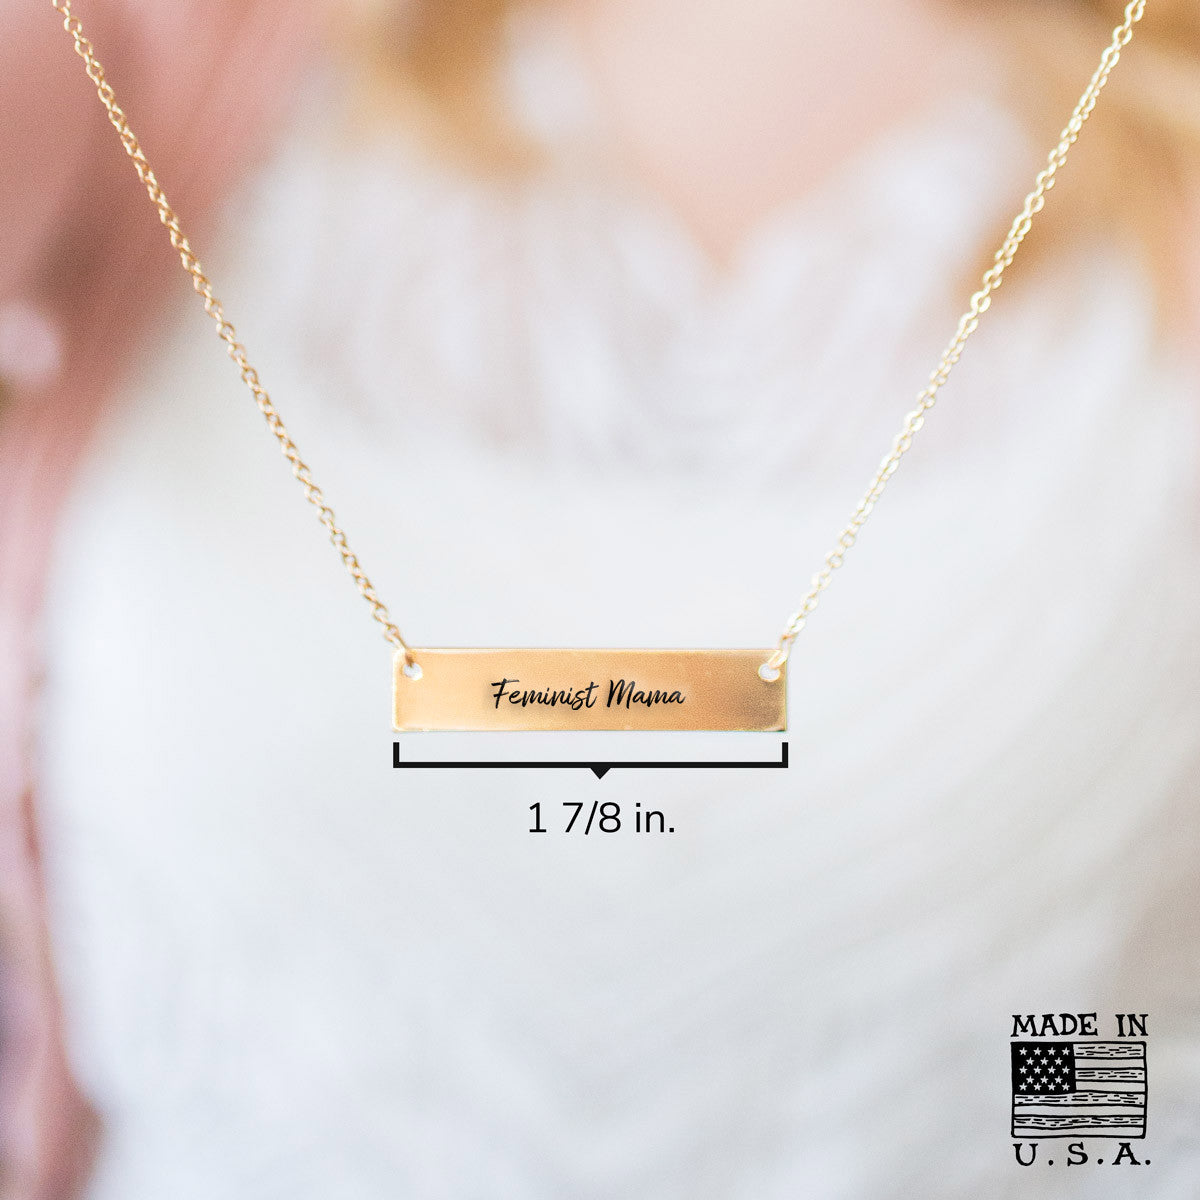 Feminist Mama Gold / Silver Bar Necklace - pipercleo.com